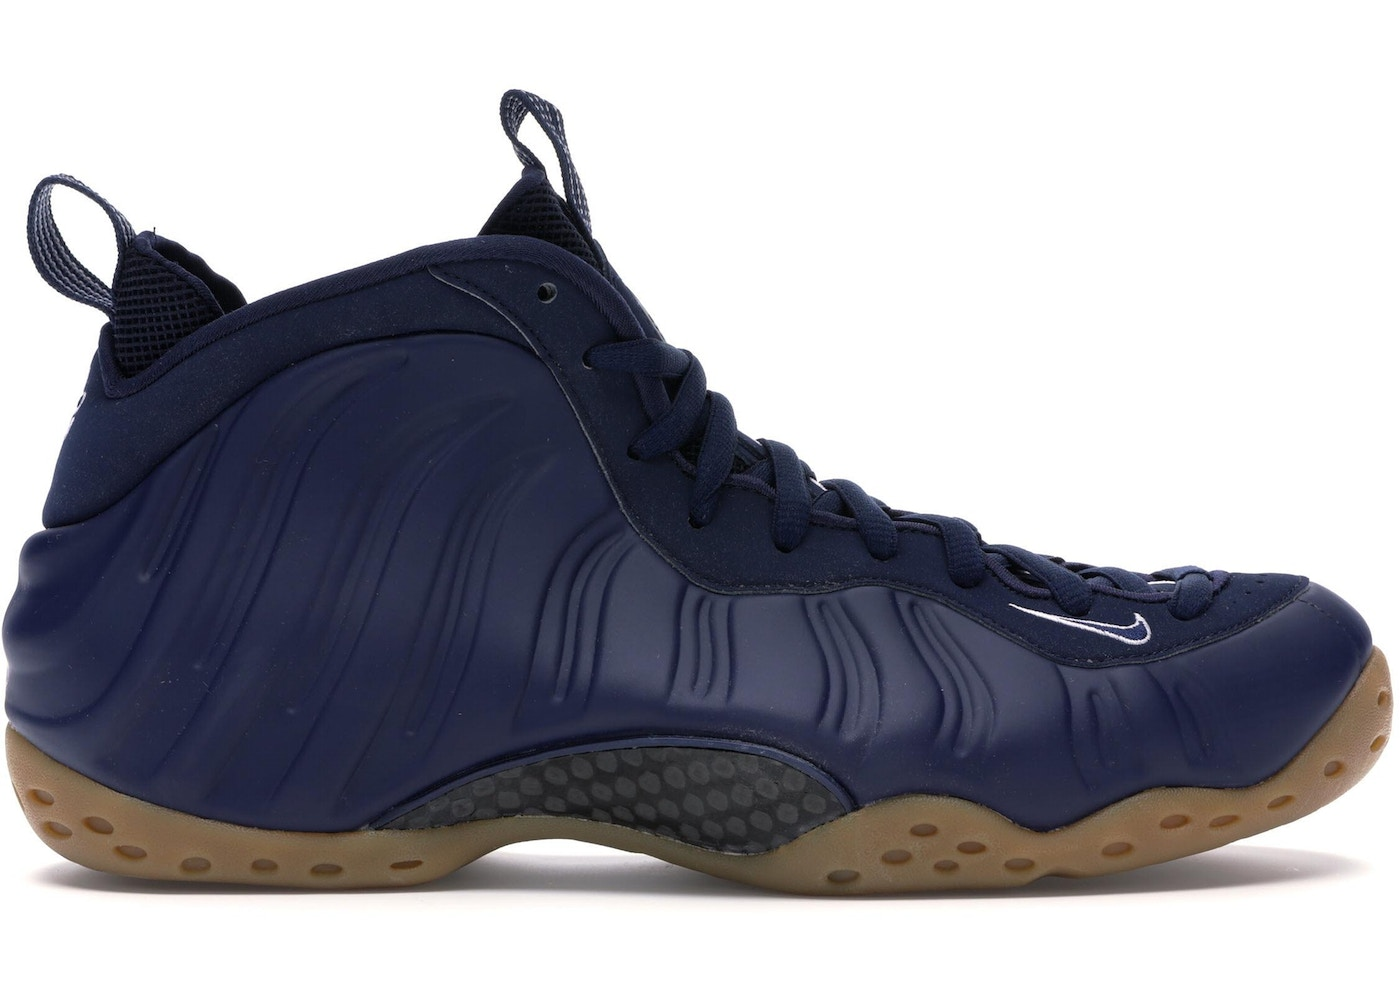 premium selection 63eaf 8f839 Air Foamposite One Navy Gum